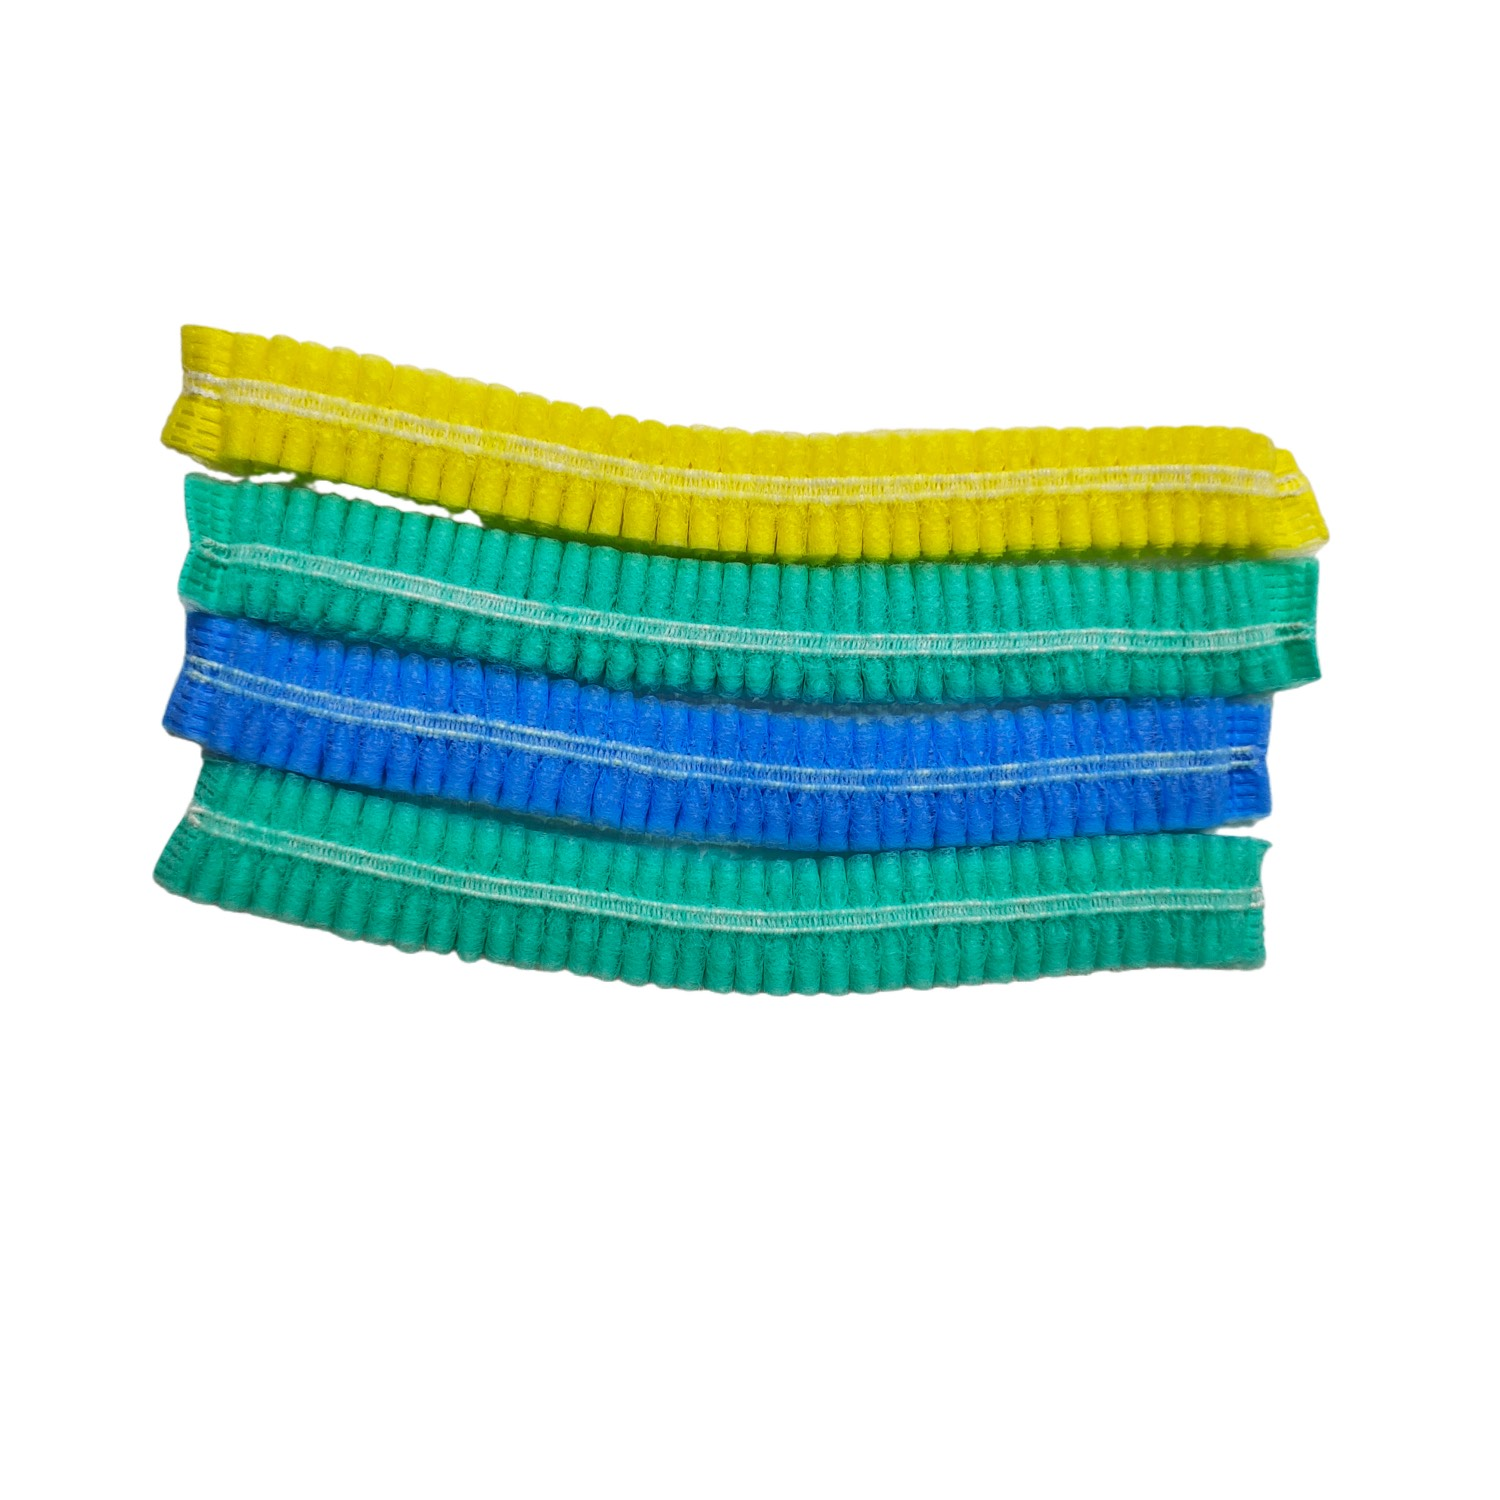 """Disposable Mob Cap Clip Cap Soft PP Nonwoven with Sewn-in Elastic Band for Secure Fit 21"""" or 24"""" in Size Multiple Colors - KingCare 